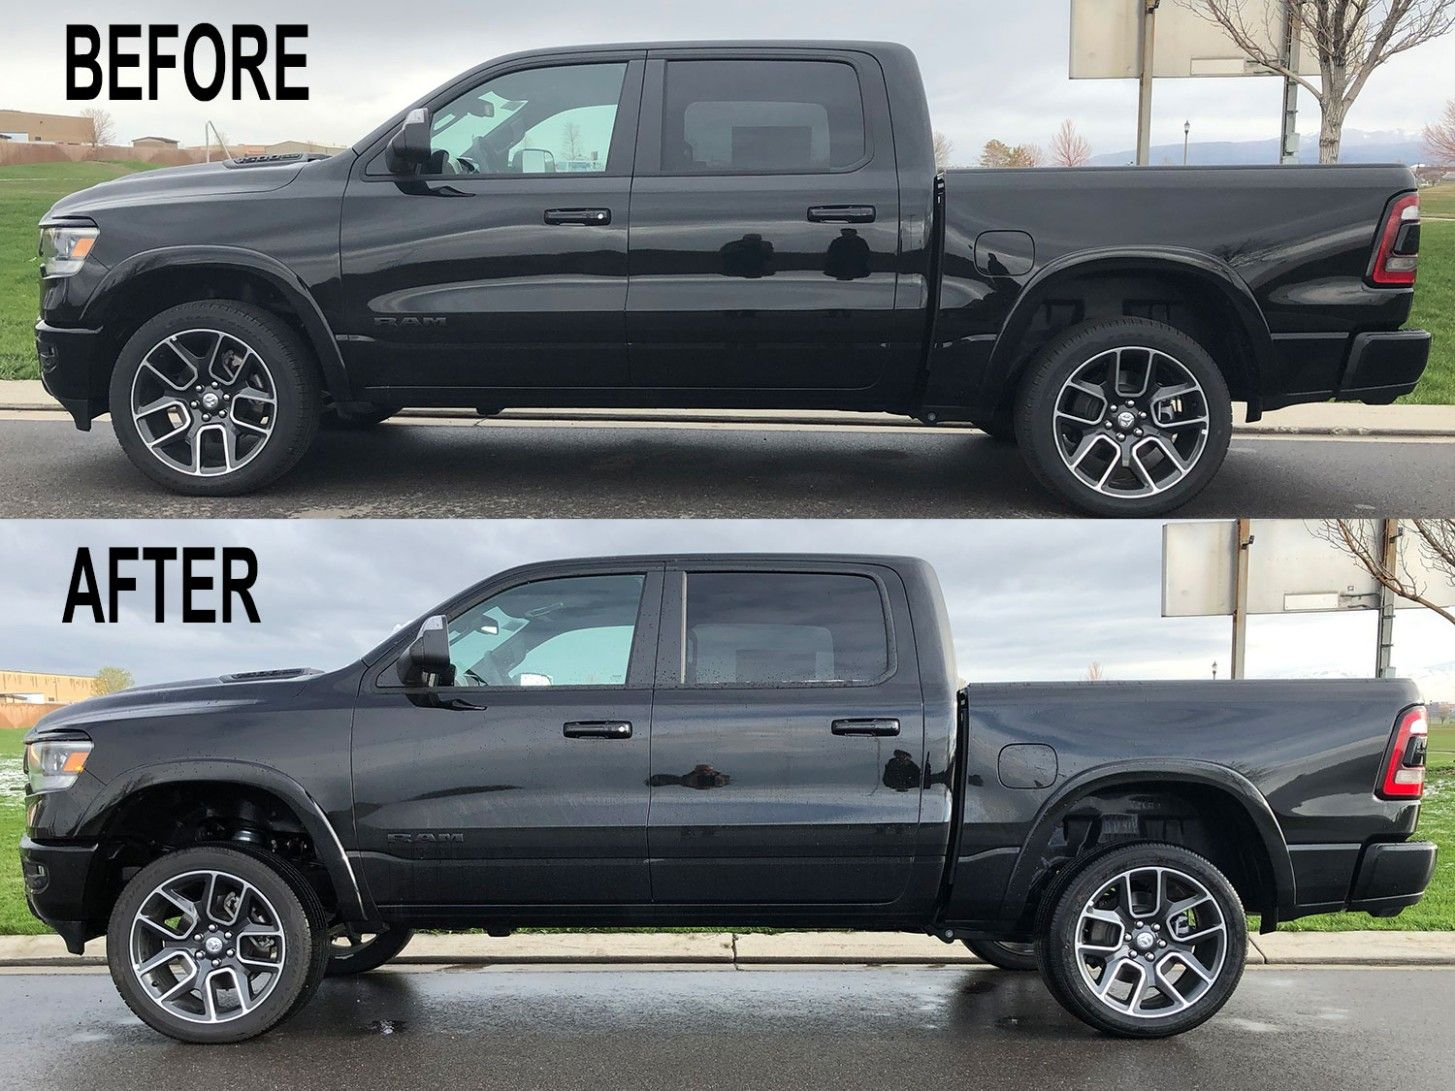 2020 Dodge Ram Lowering Kit Design Will Be A Thing Of The